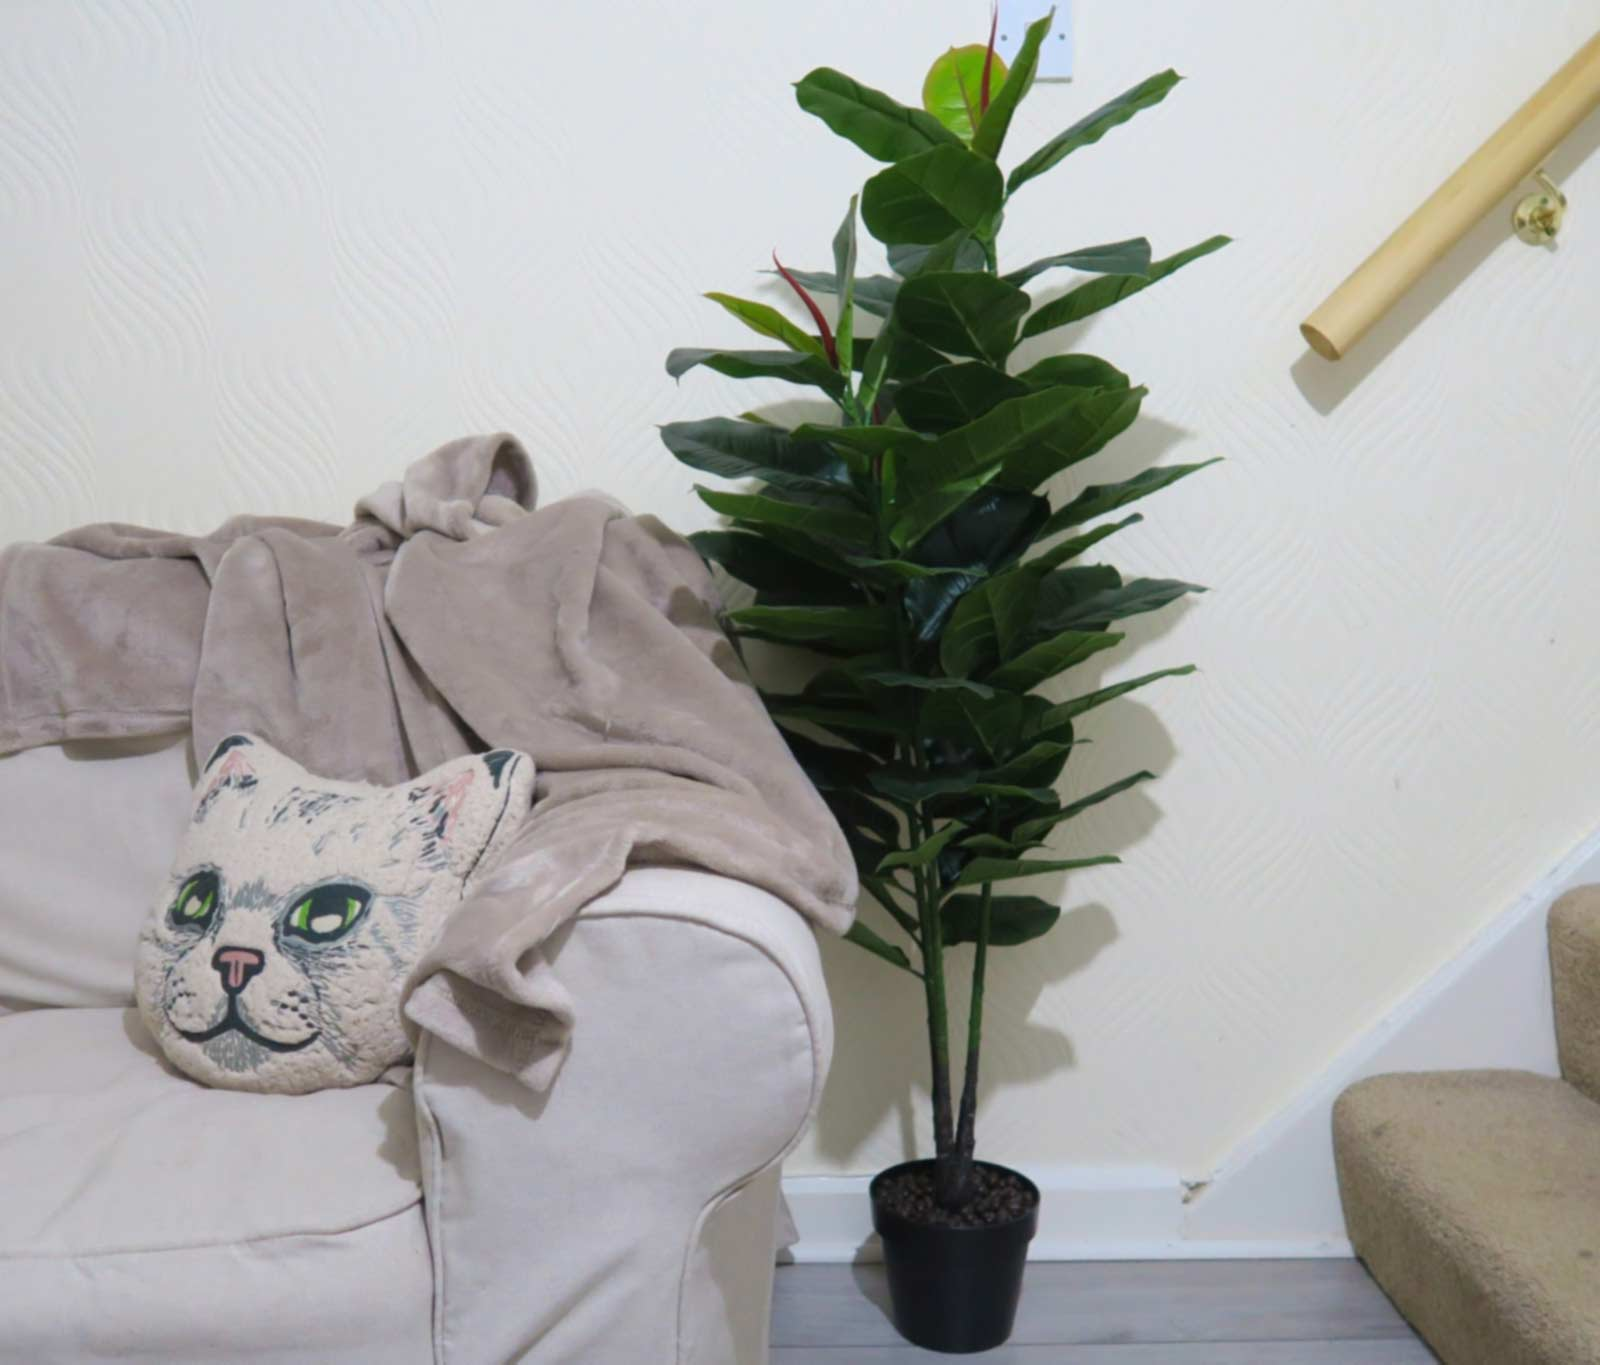 sofa and house plant leading to stairs